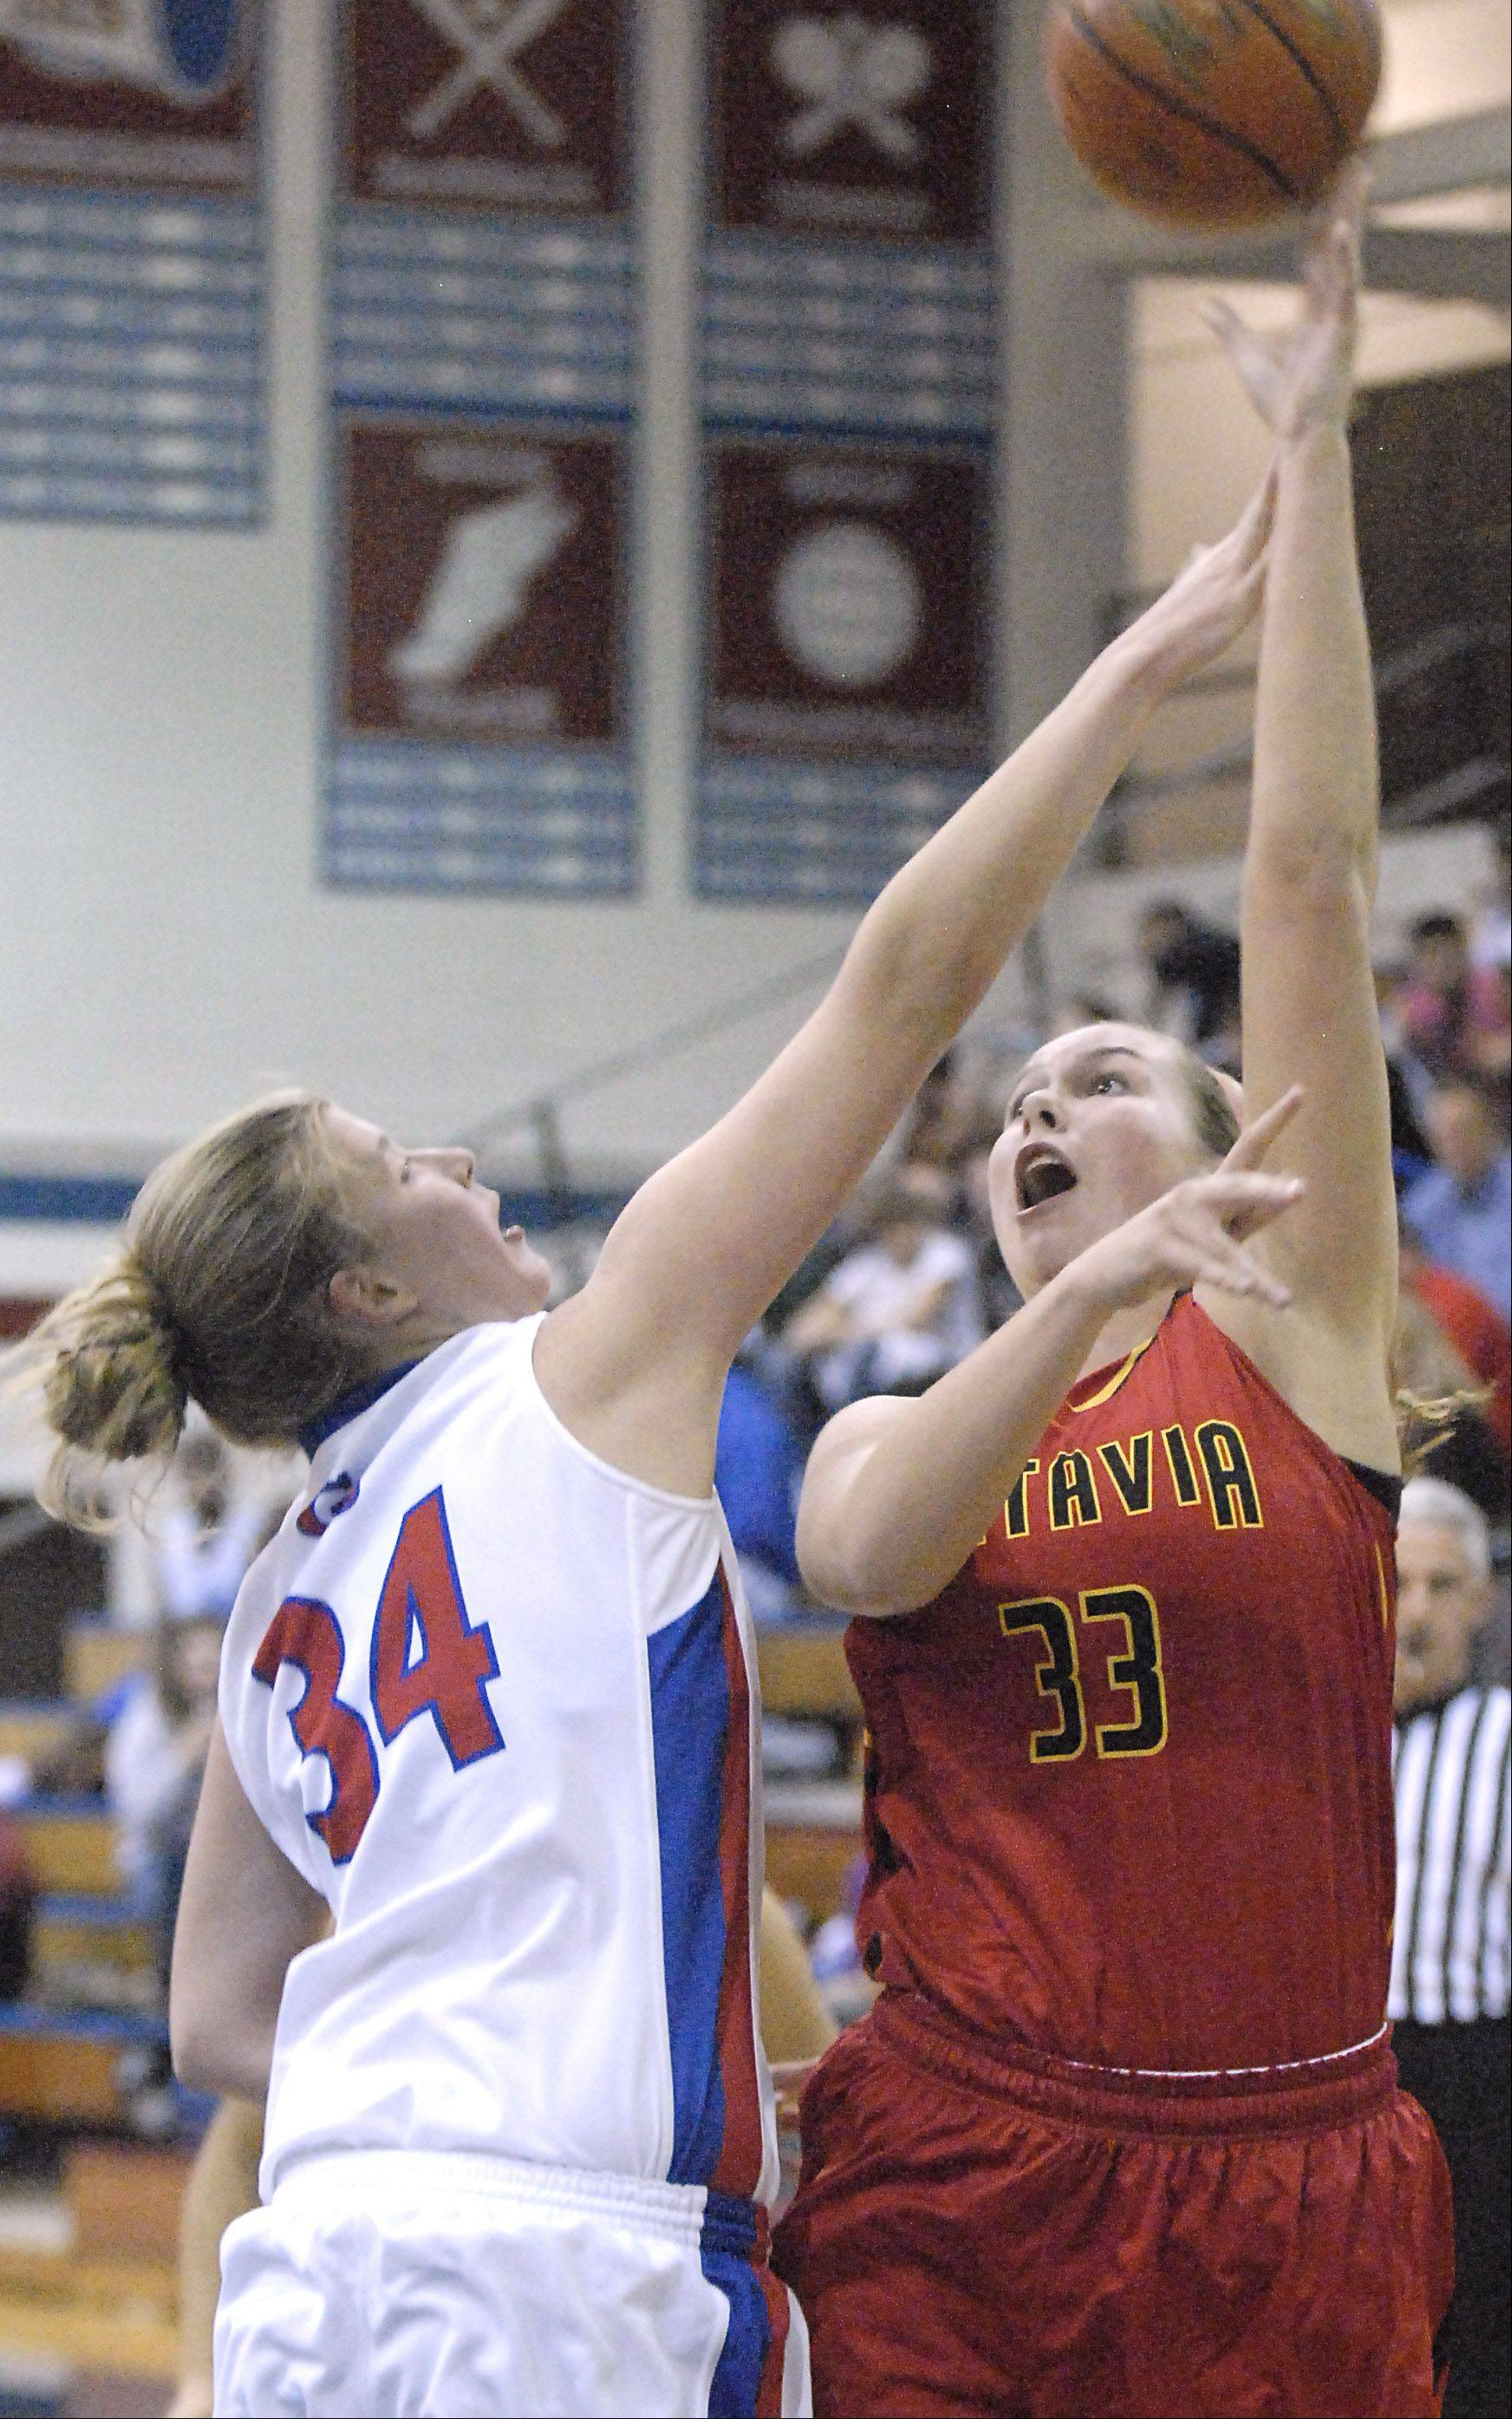 Glenbard South's Sydney Bauman attempts to block a shot by Batavia's Erin Bayram in the first quarter on Tuesday, November 13.